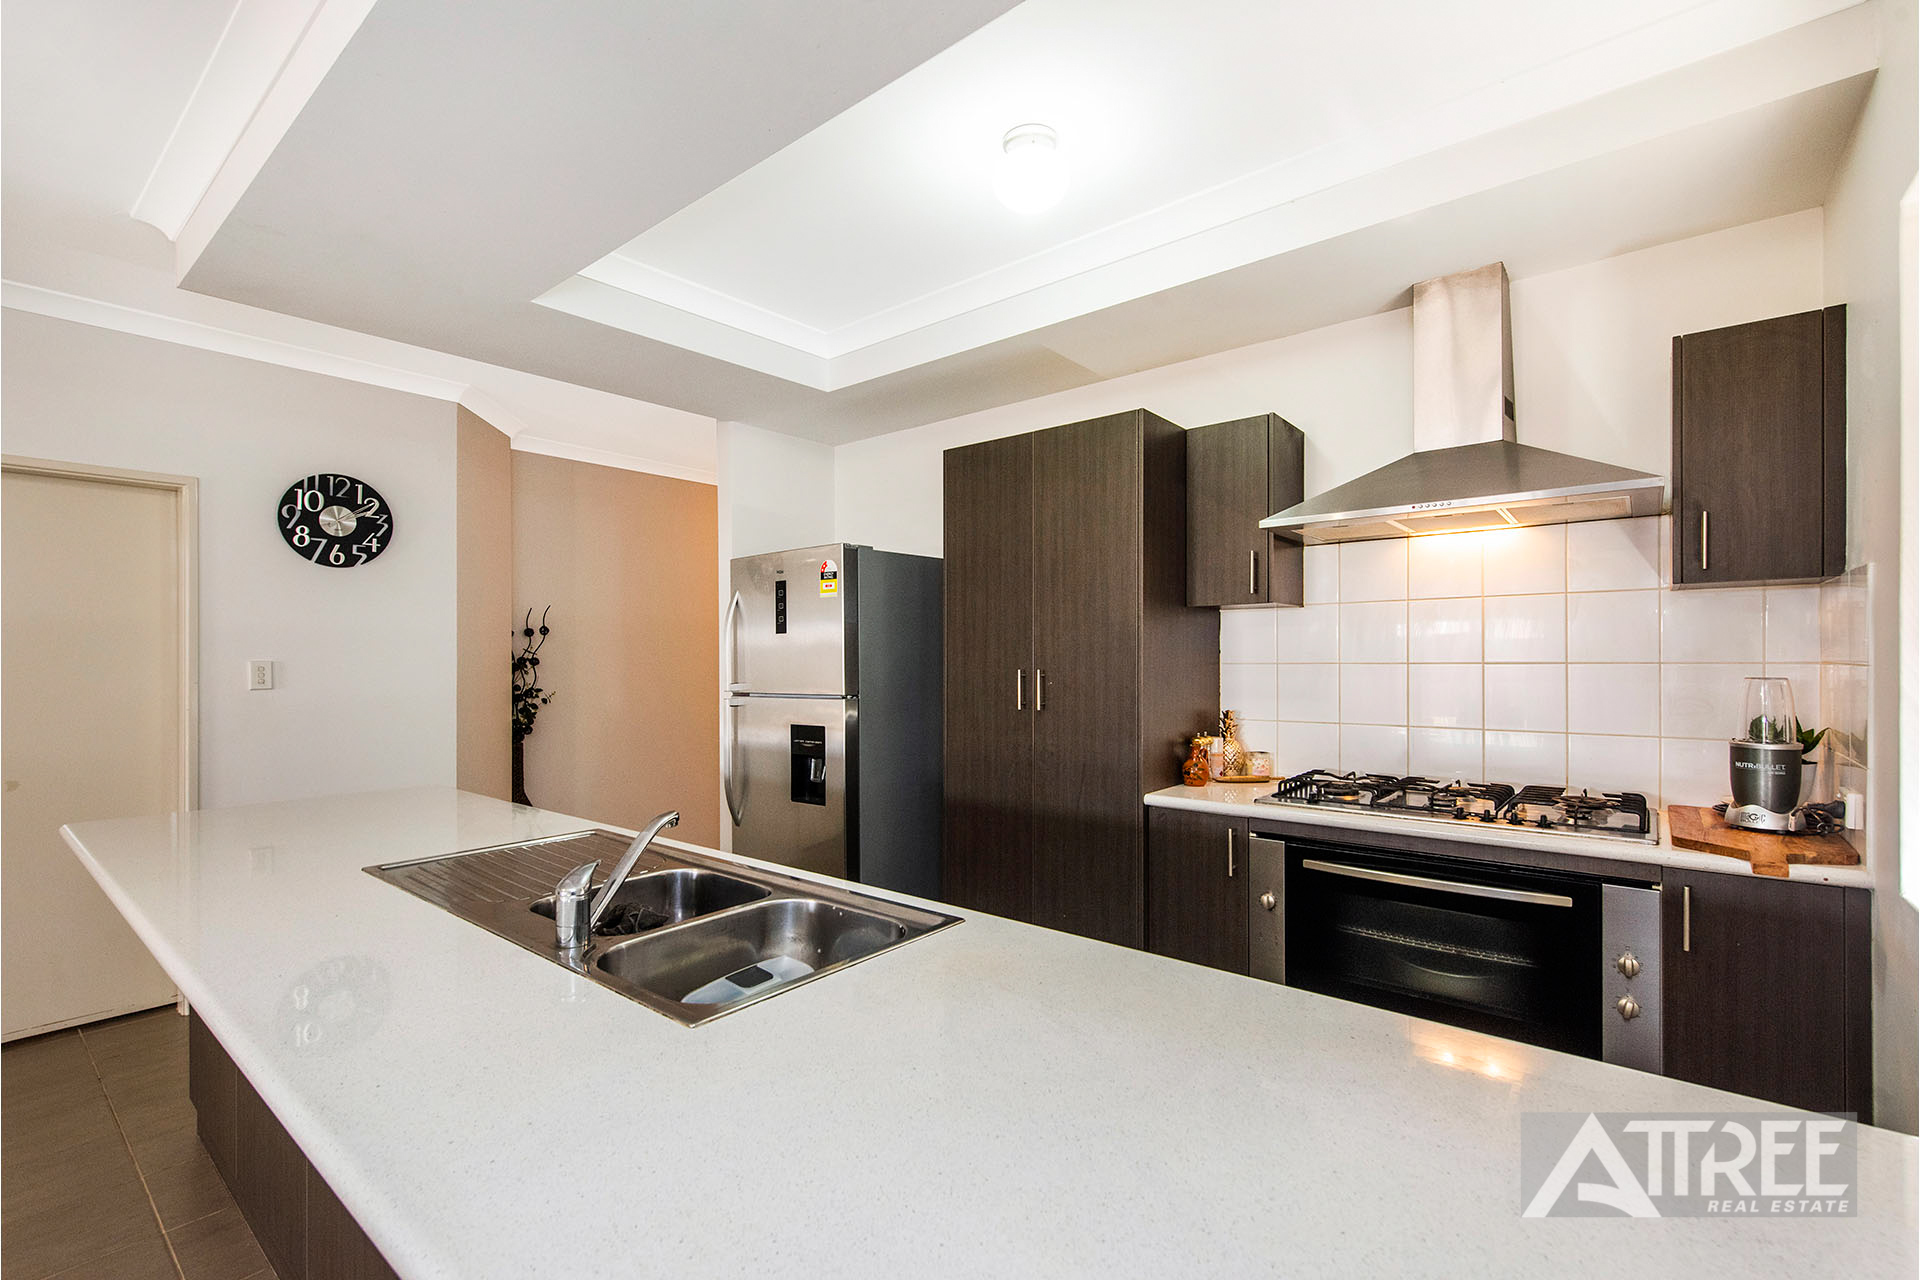 Property for sale in SOUTHERN RIVER, 20 Bristle Ave : Attree Real Estate